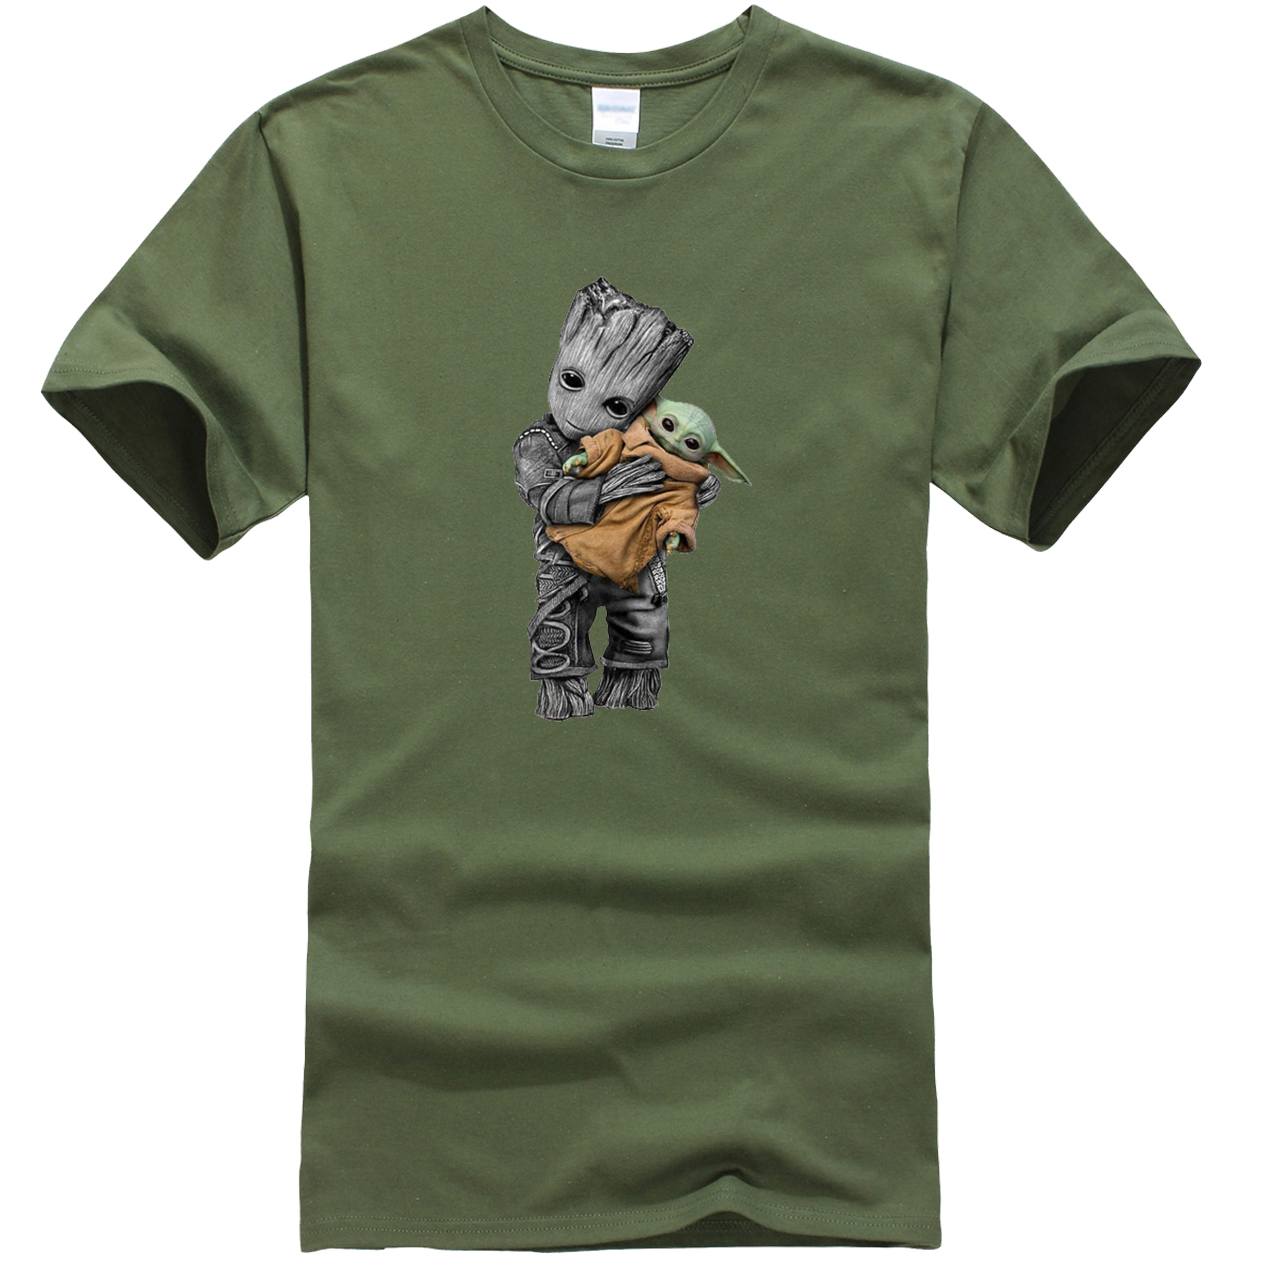 The Mandalorian Men T-Shirts Hip Hop Casual Star Wars Tops New Summer 2020 GROOT And Baby Yoda Male T Shirt Cotton Funny T-Shirt